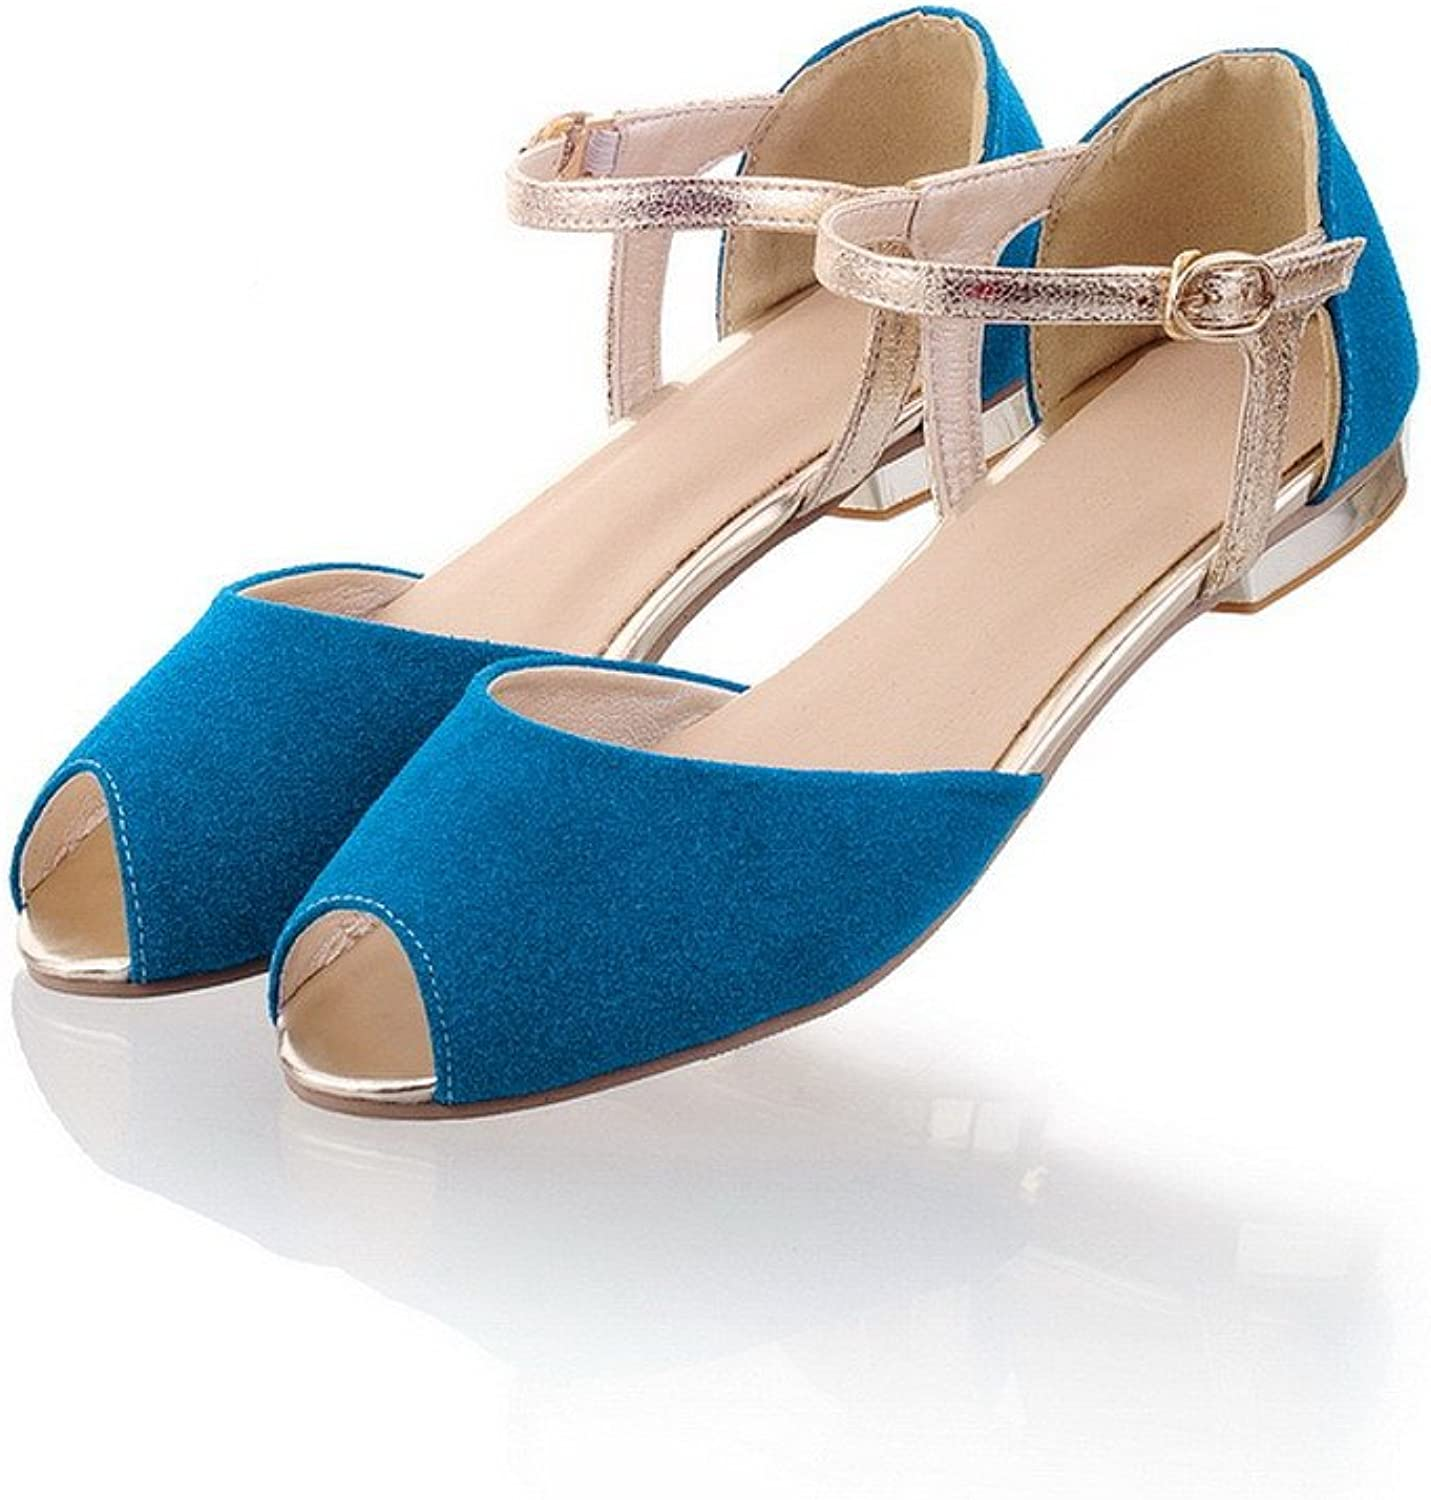 AmoonyFashion Womens Open Peep Toes Imitated Suede Frosted Solid Sandals, bluee, 10 B(M) US